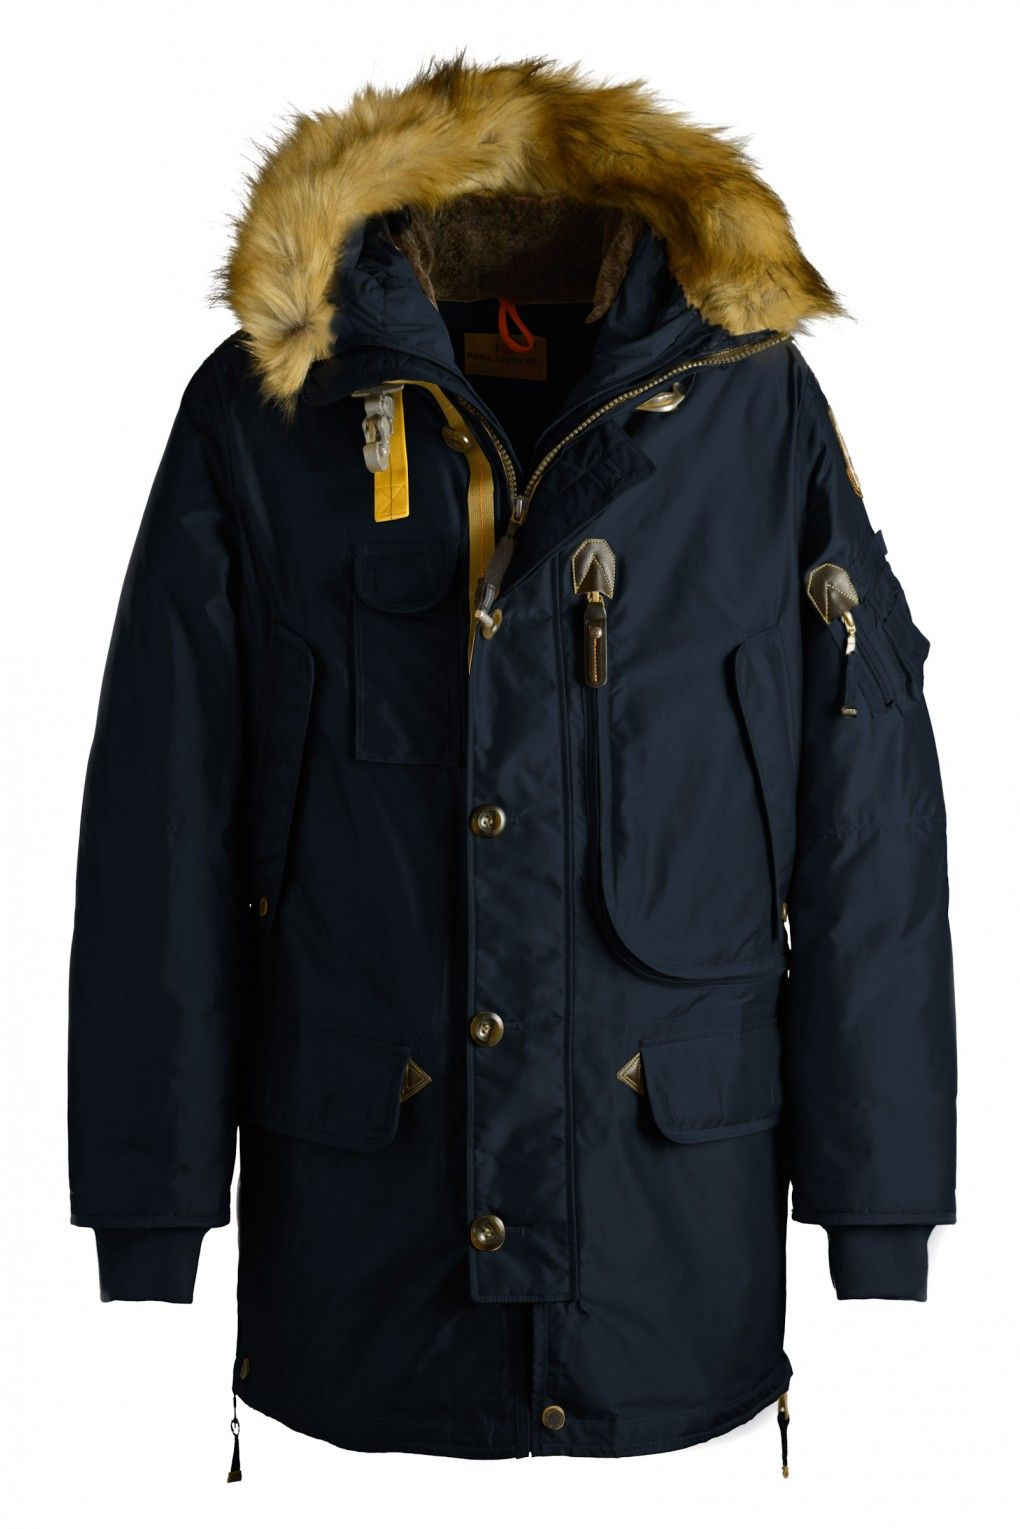 Parajumpers Owner outlet